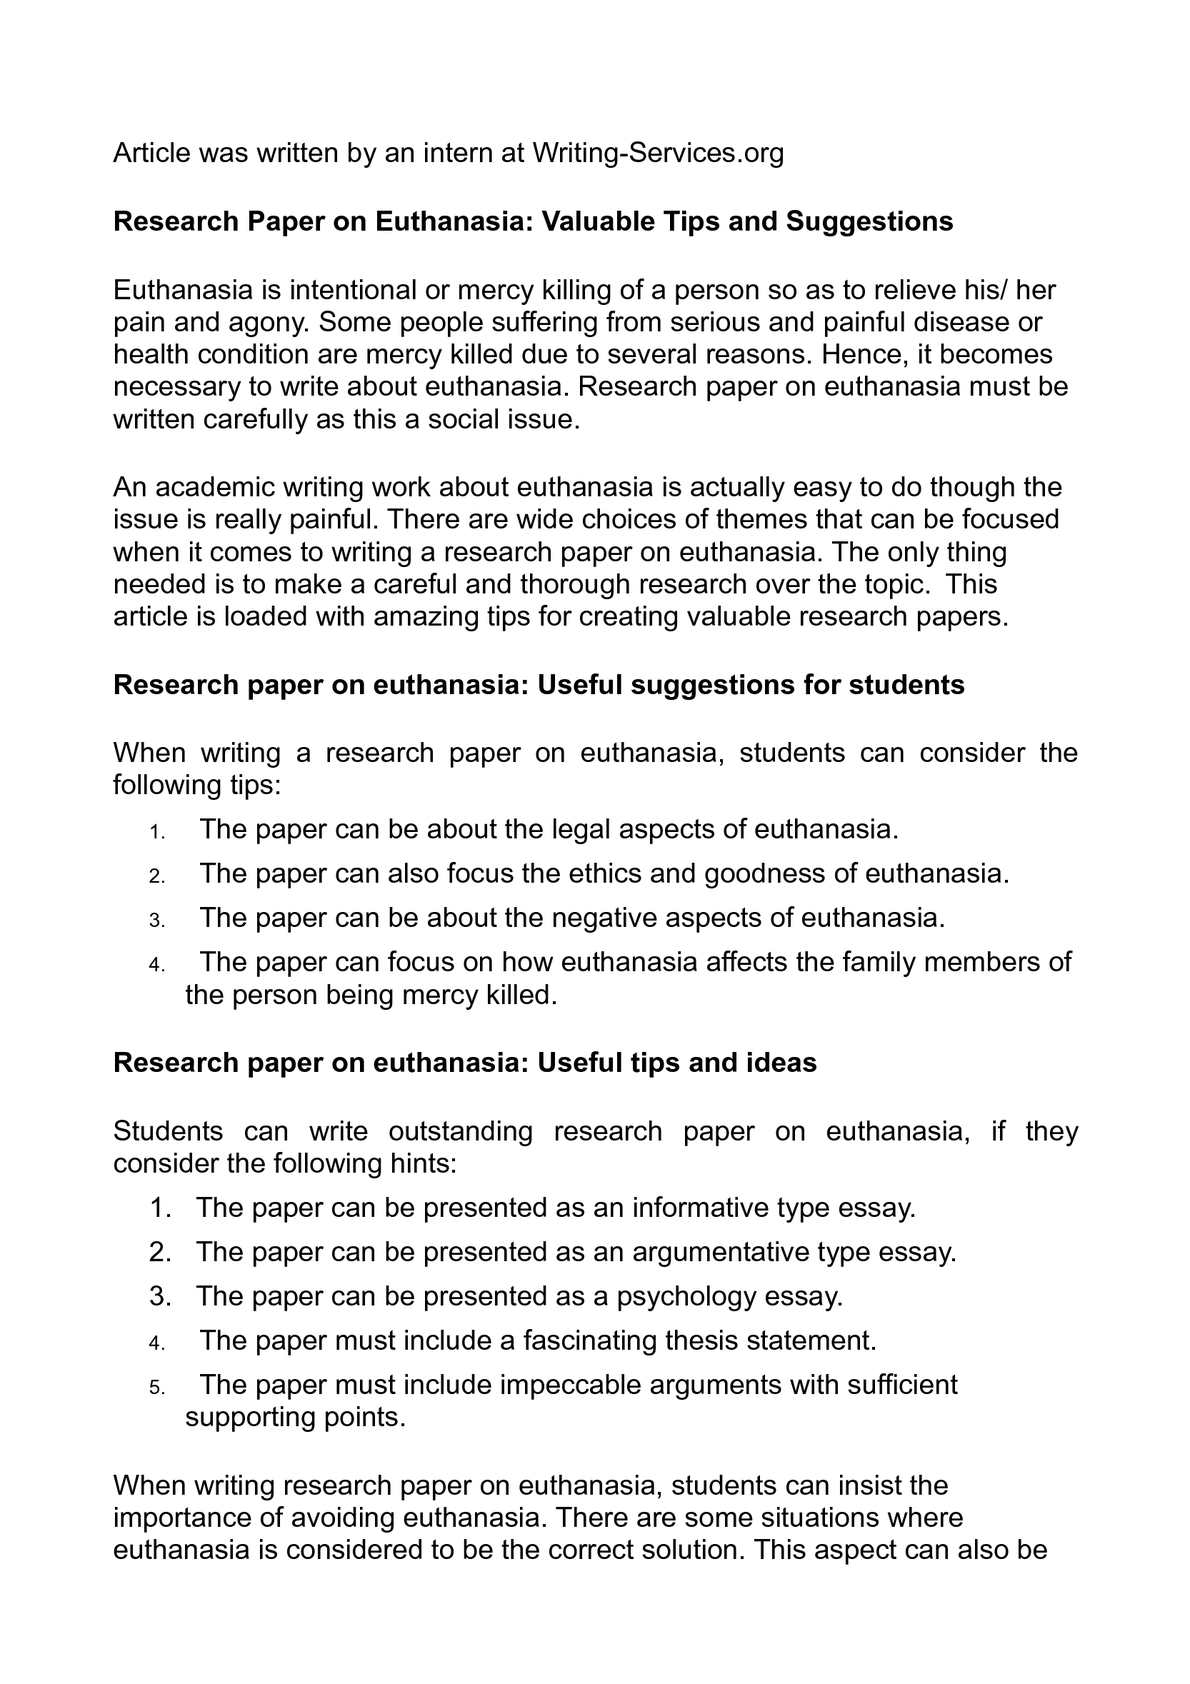 euthanasia argumentative essay essay argumentative essay on  research on euthanasia research papers on euthanasia harvard college application essay research papers on euthanasia harvard